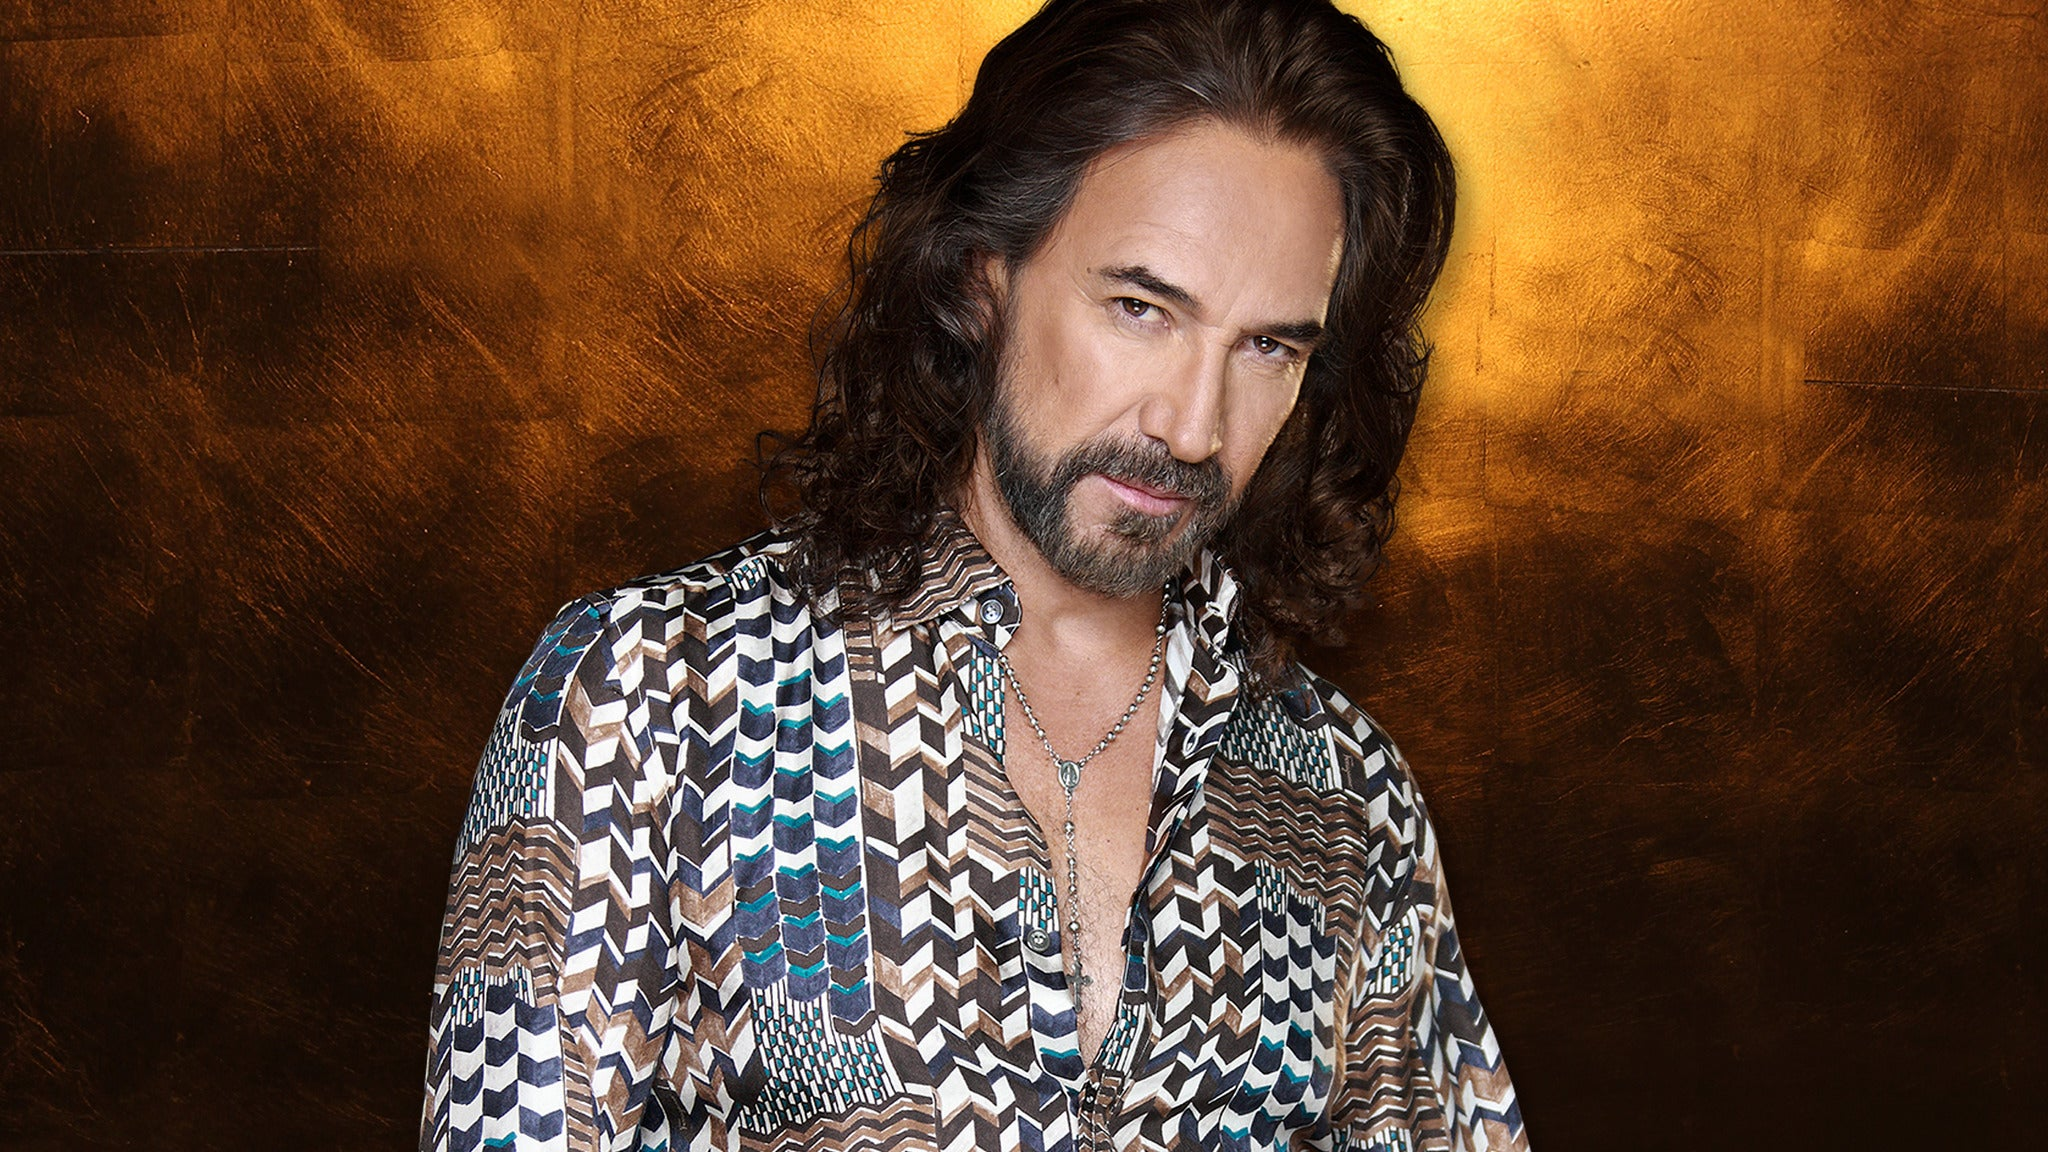 Marco Antonio Solis at White River Amphitheatre